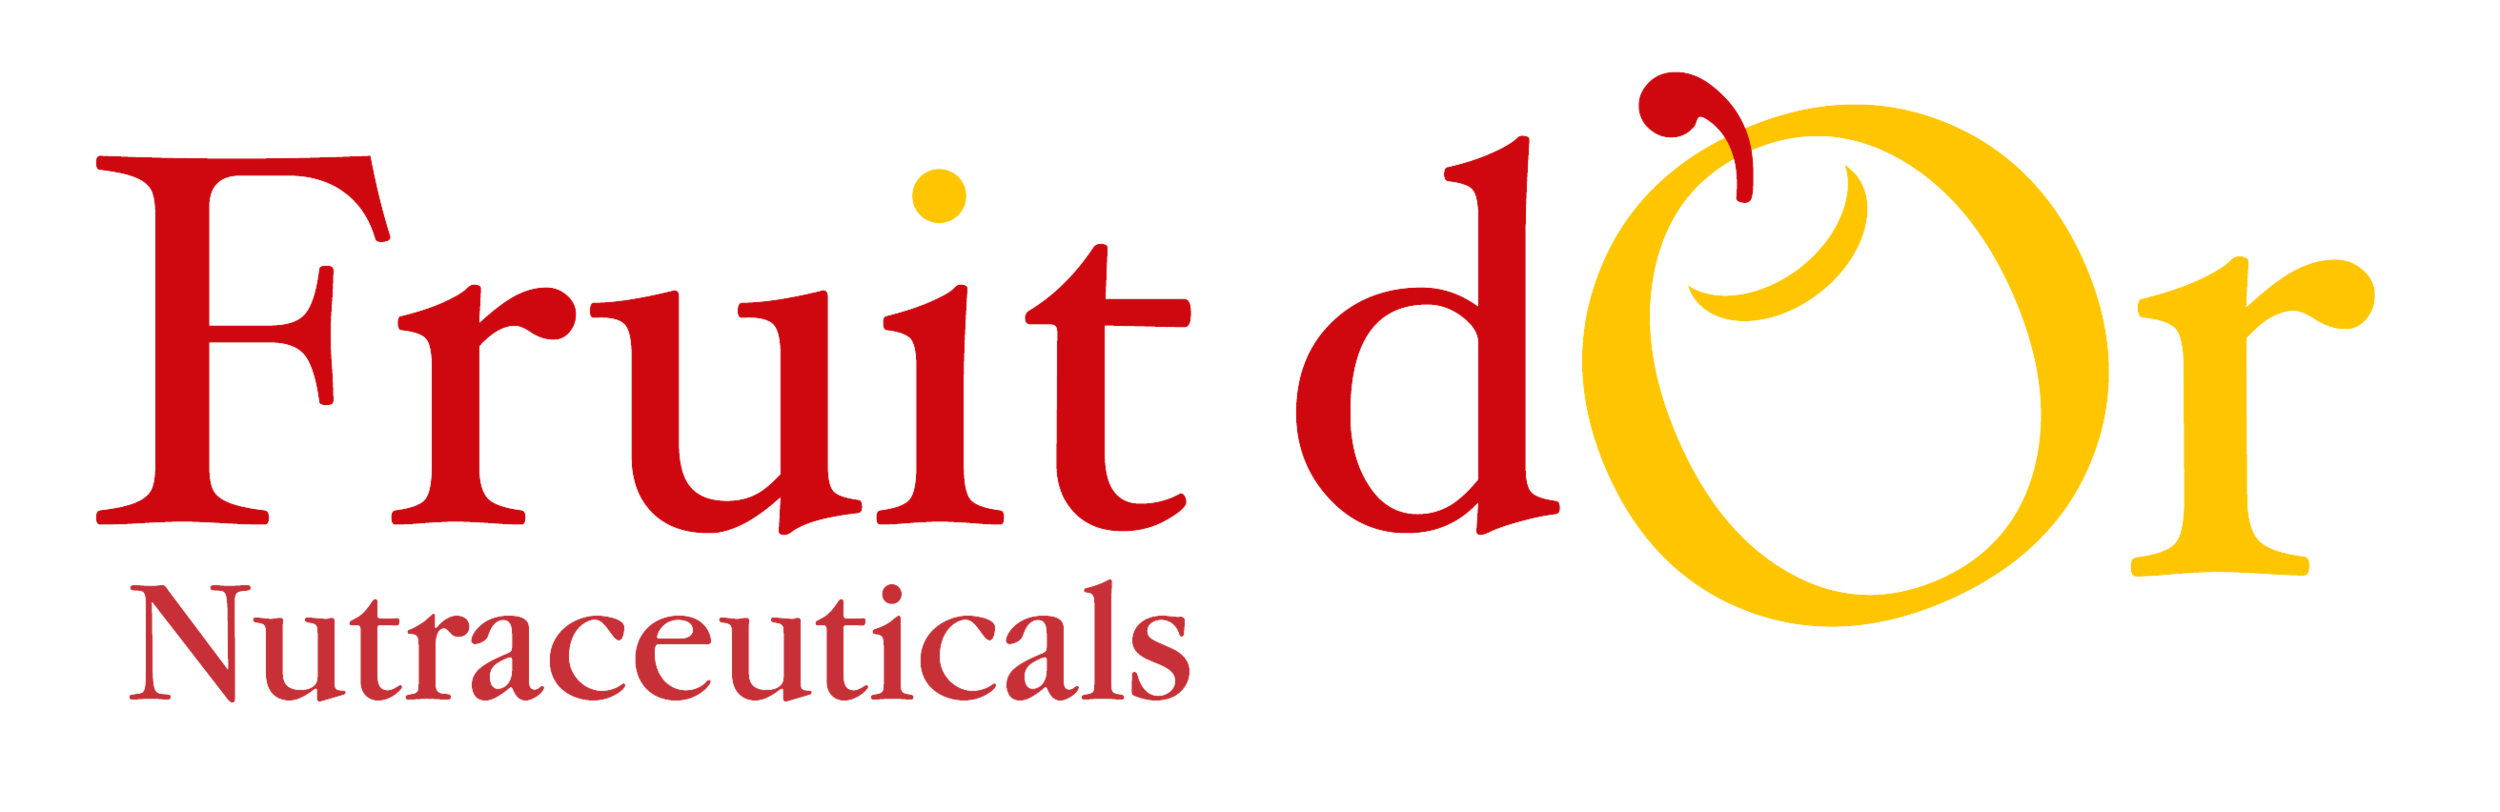 Fruit-dOr-logo.png